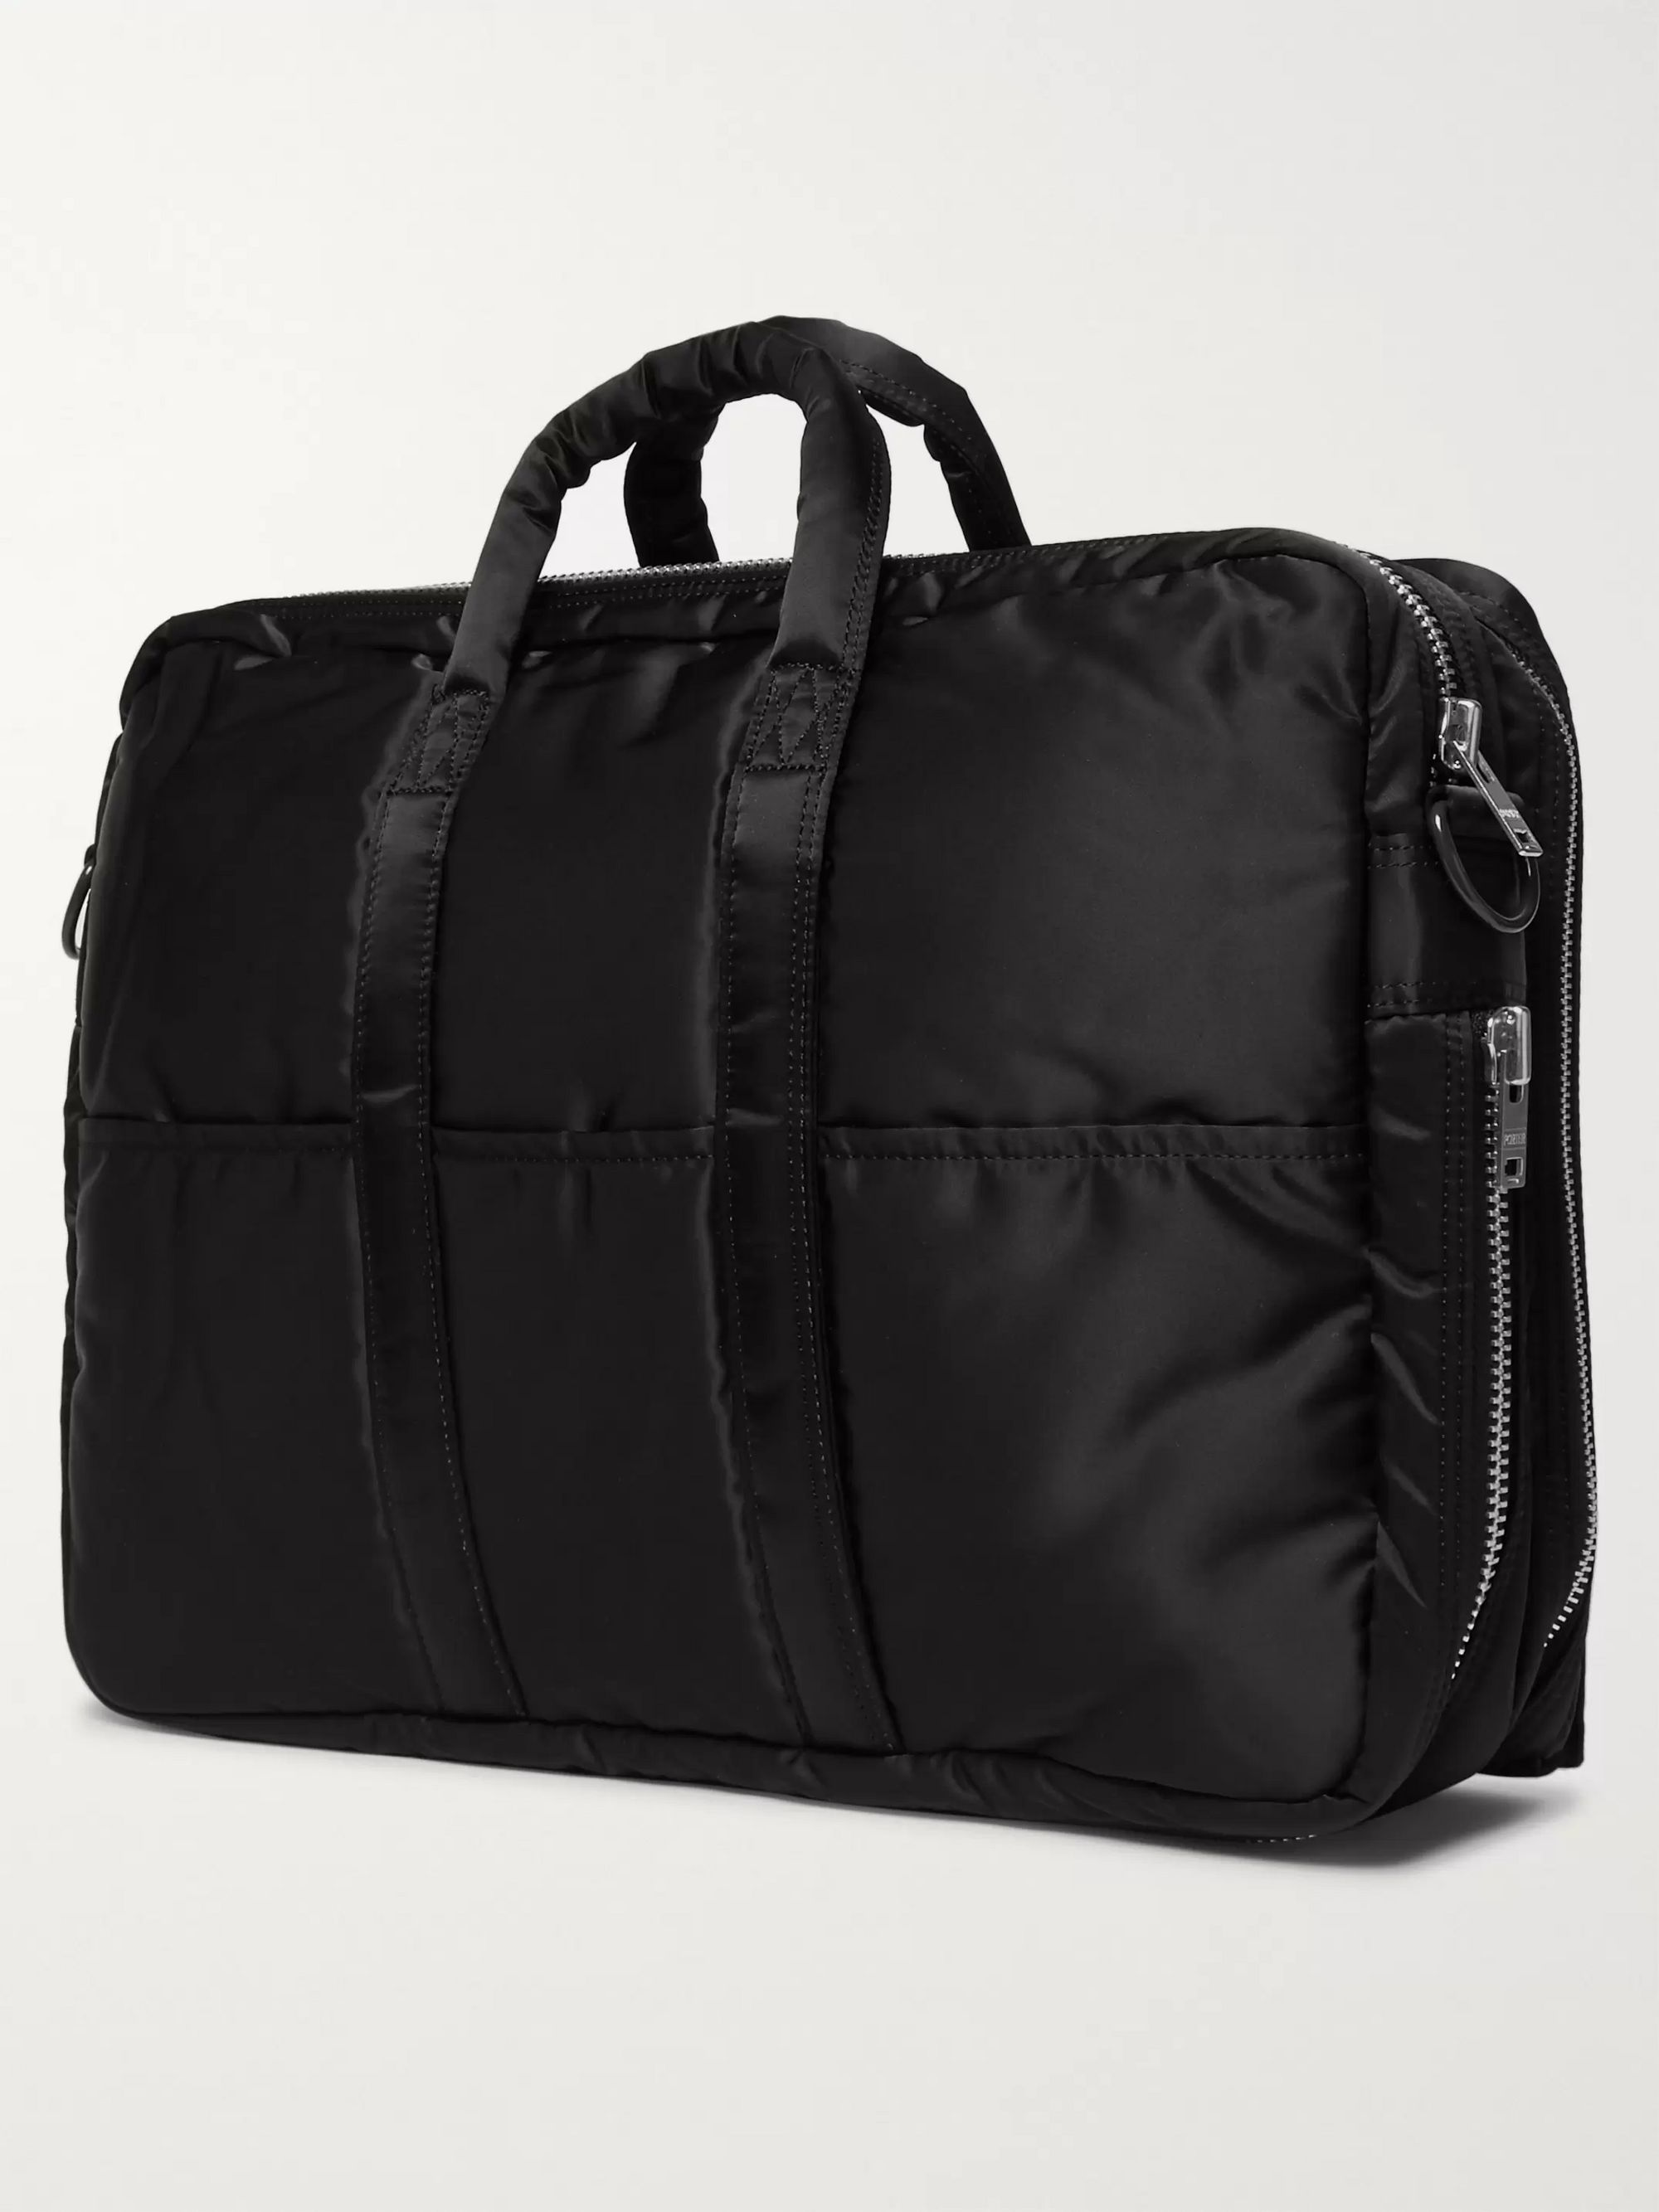 Porter-Yoshida & Co Tanker 2Way Nylon Briefcase